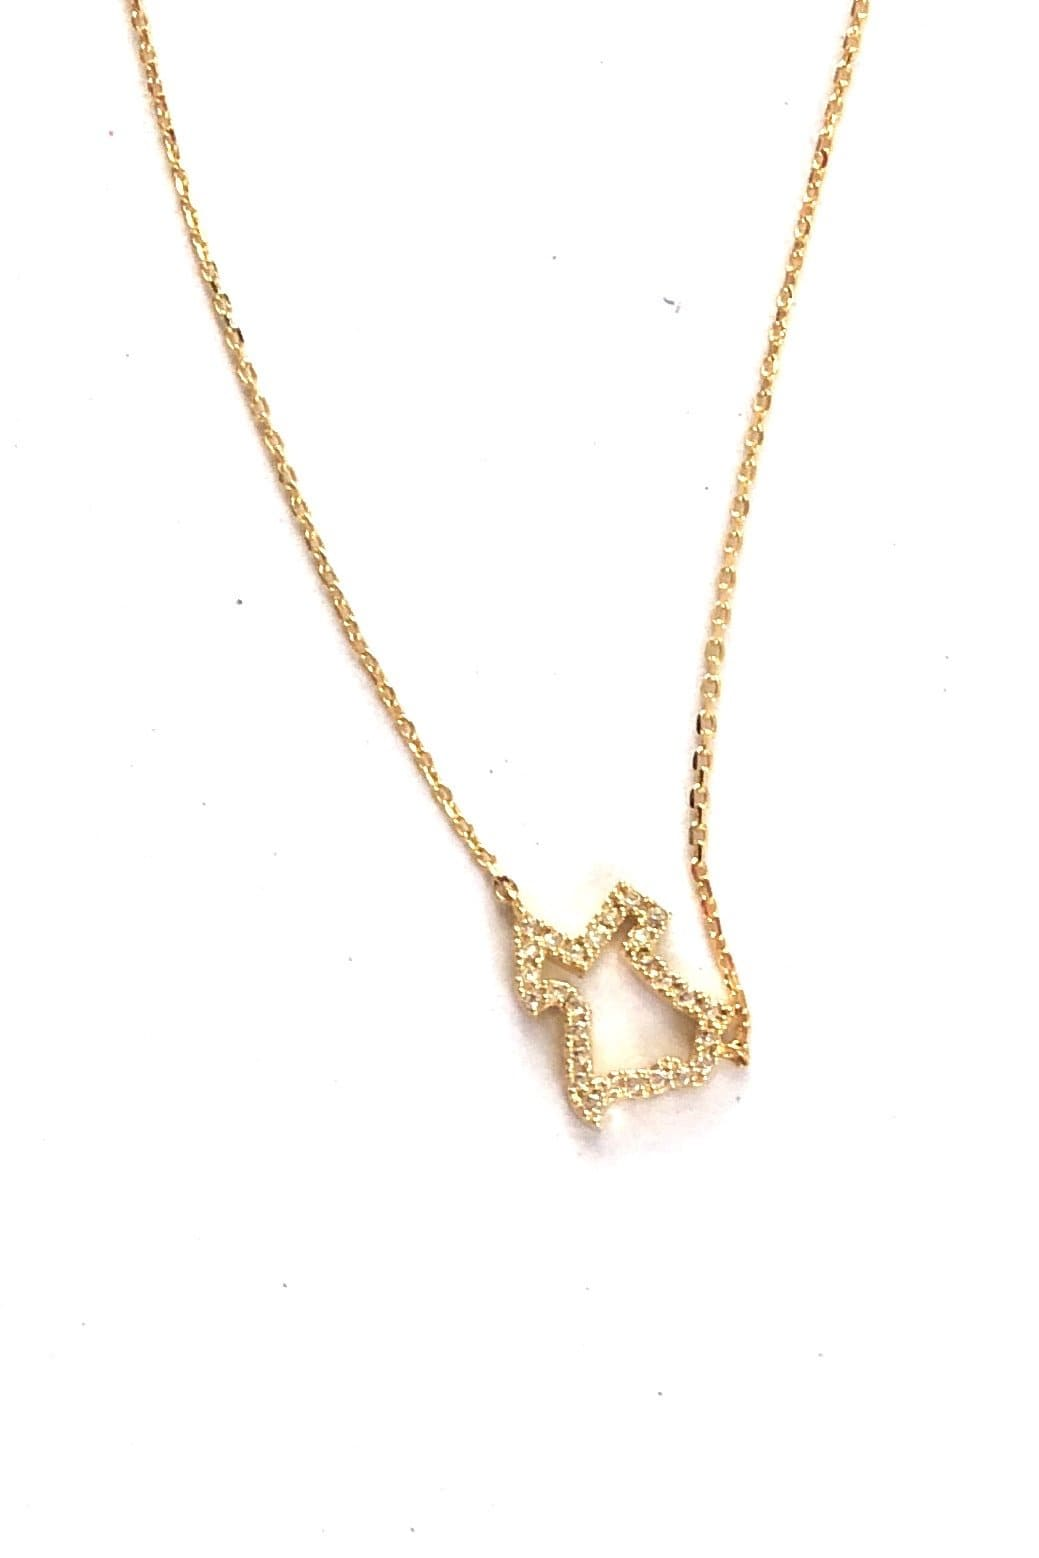 NECKLACE Texas State Line Necklace - Chloe Dao